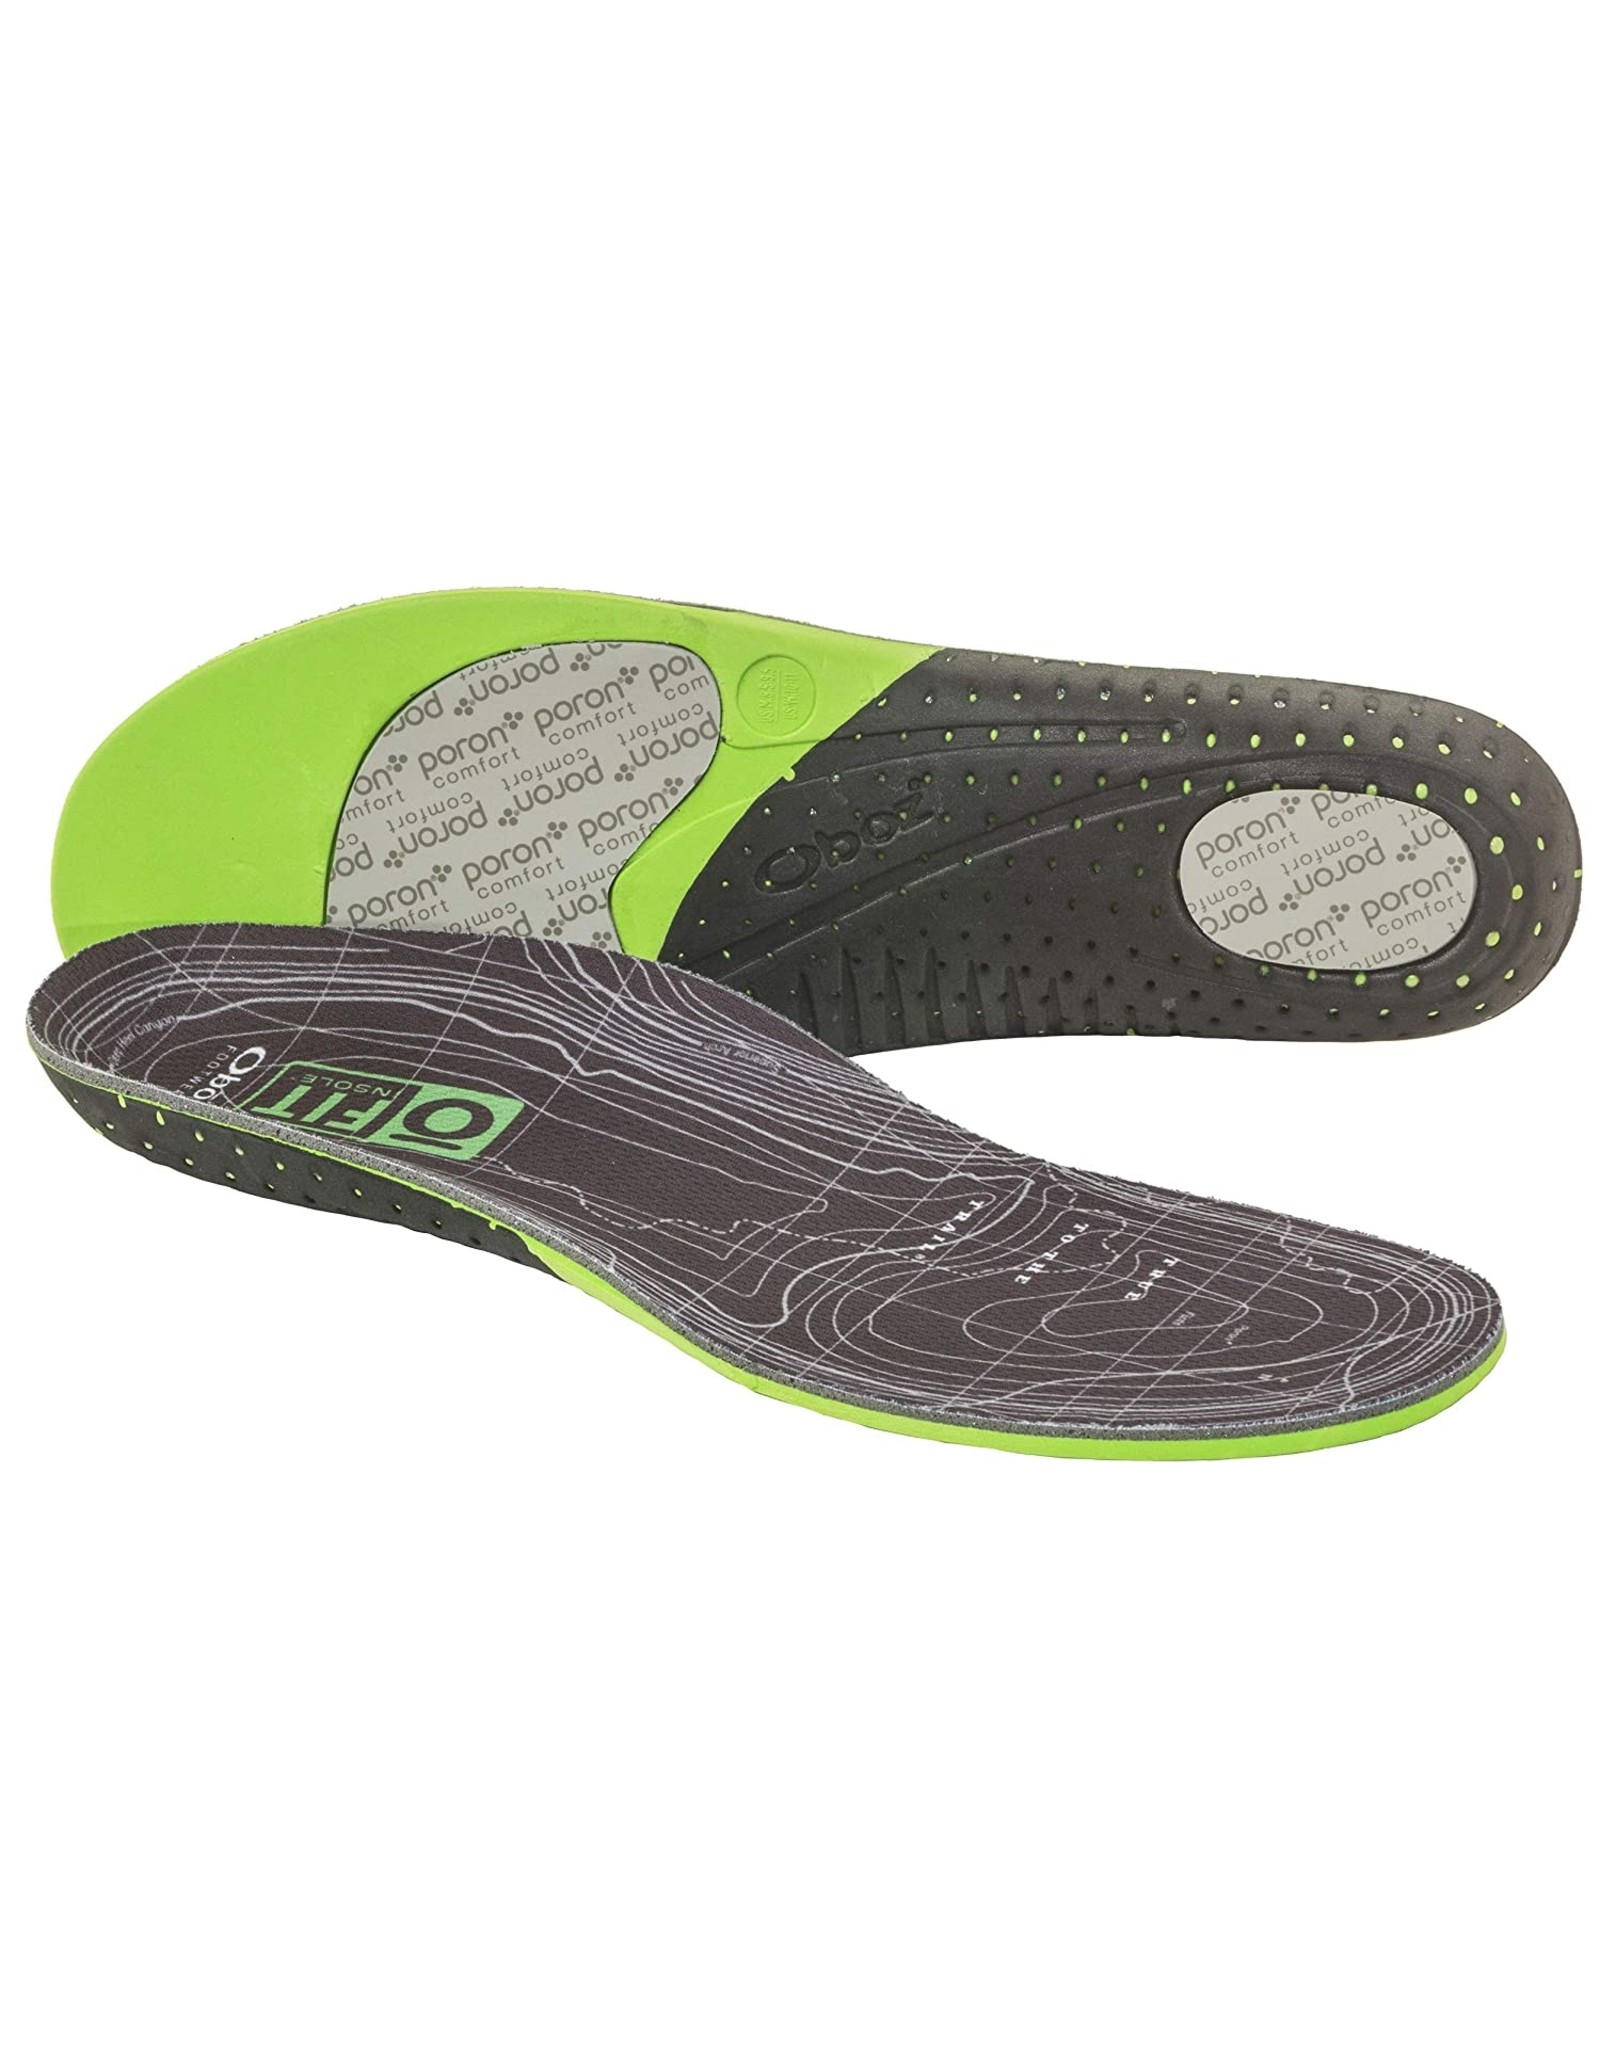 Oboz Oboz O FIT Insole Plus Thermal Medium Arch Unisex Green XS